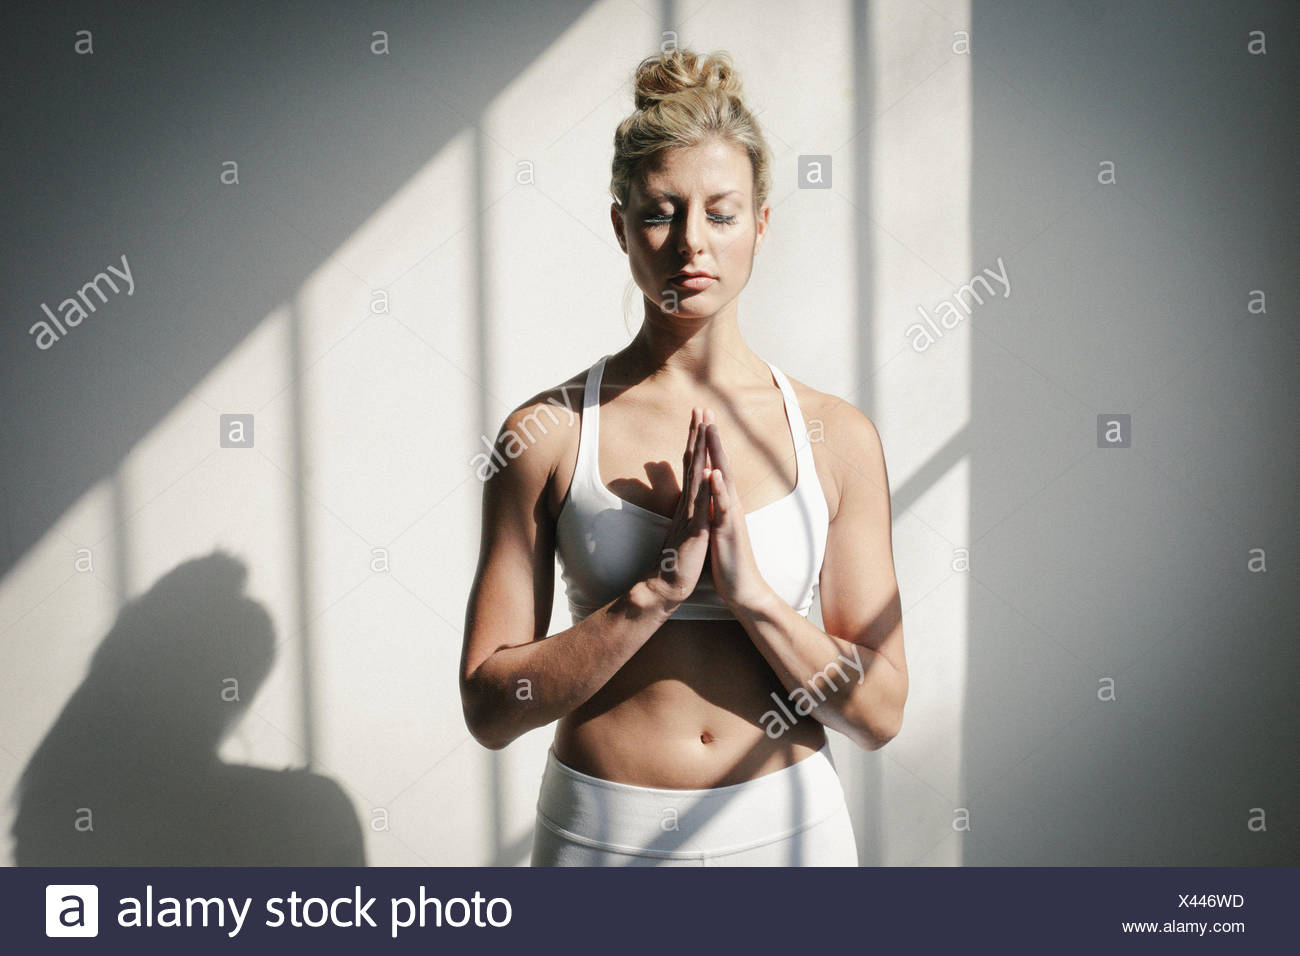 A blonde woman, her eyes closed, in a white crop top and leggings, standing in front of a white wall, doing yoga. - Stock Image